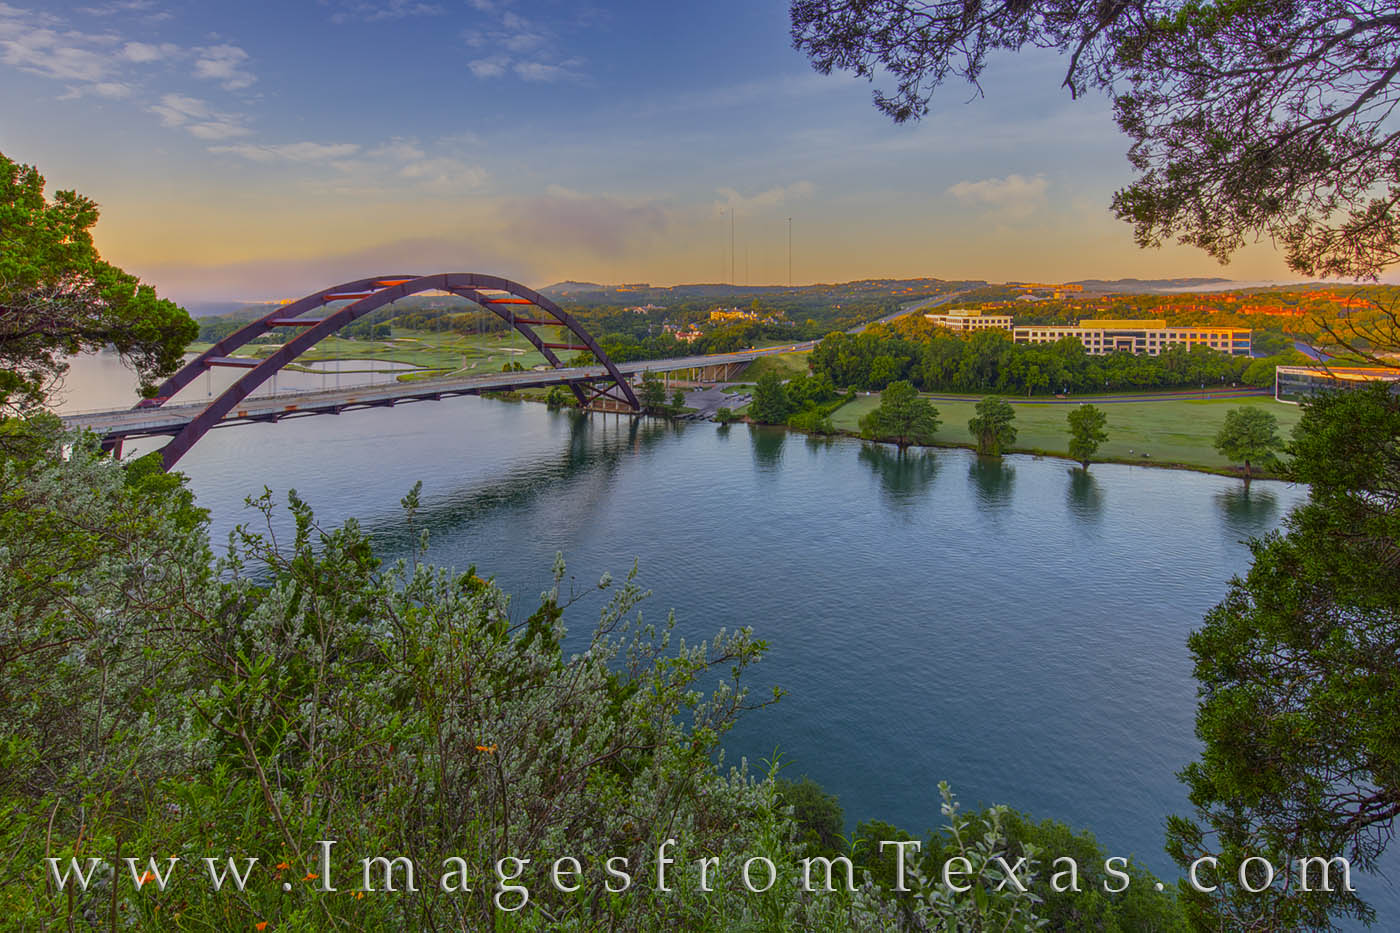 pennybacker bridge, 360 bridge, austin, overlook, austin bridge, prints for sale, austin prints, best austin images, photo